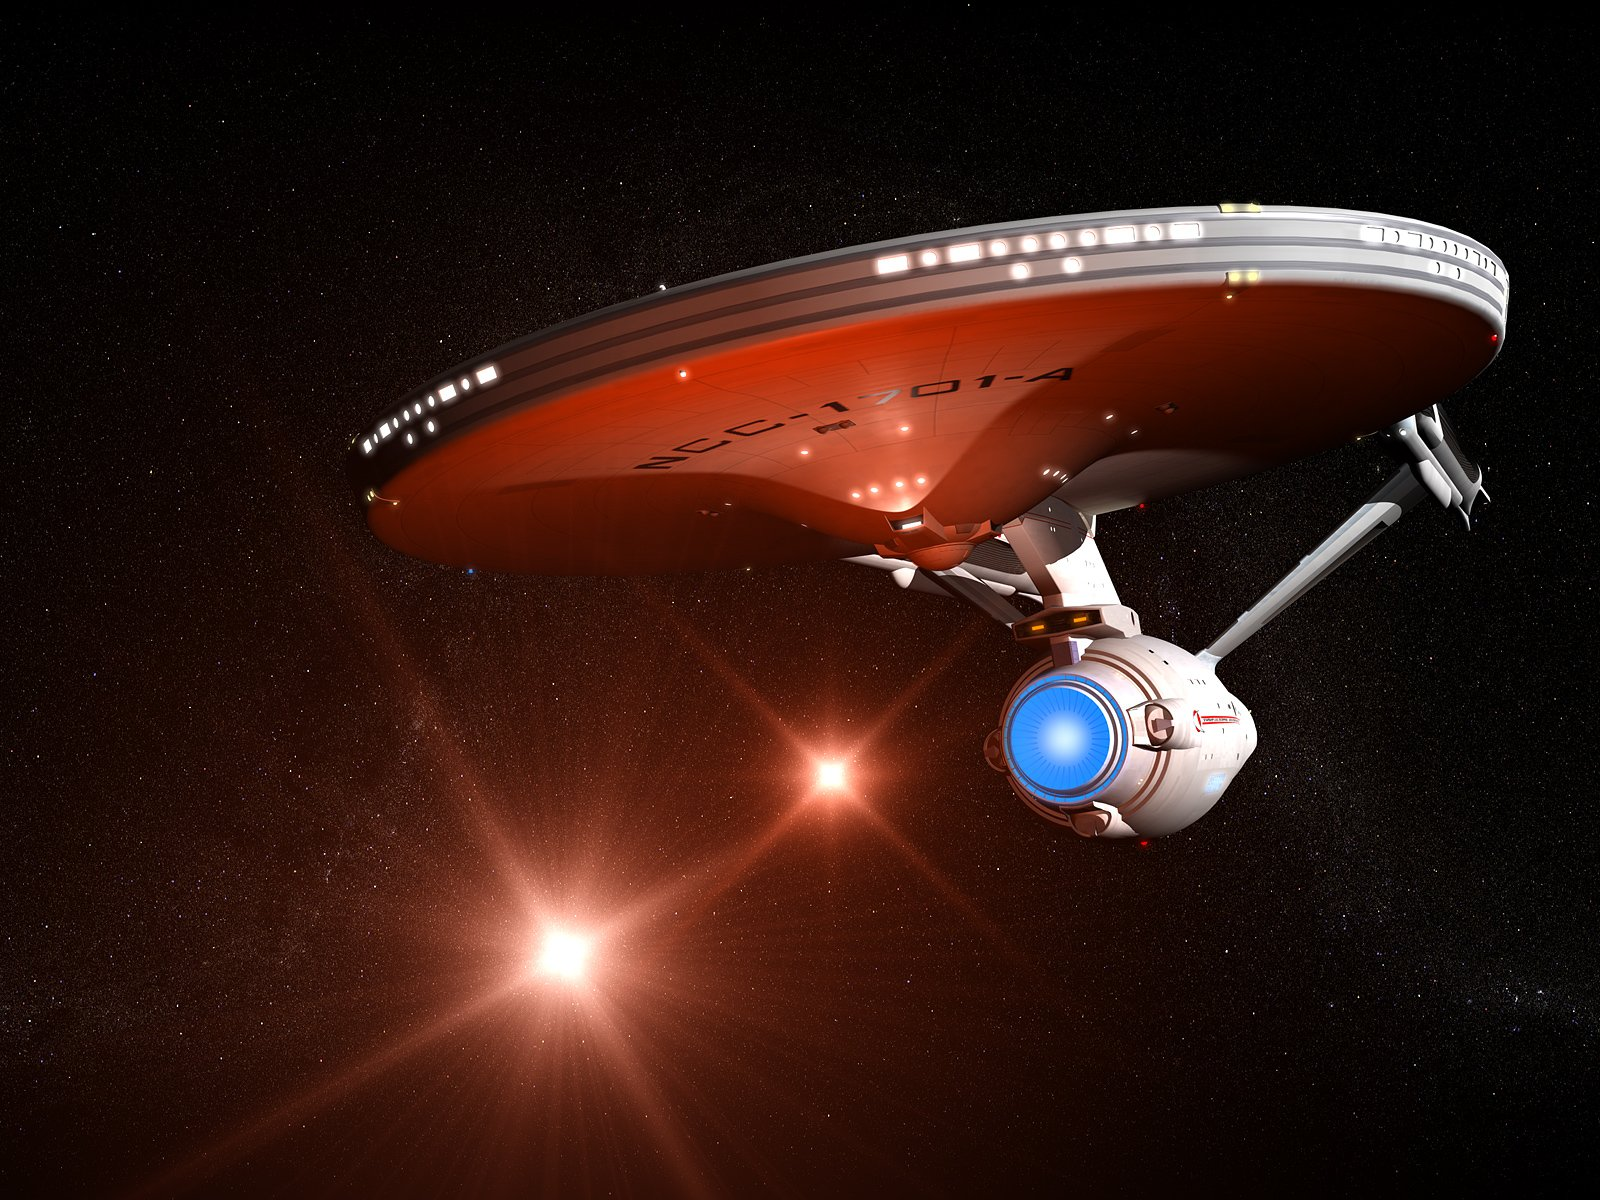 Star Trek Has Arrived In The Real World